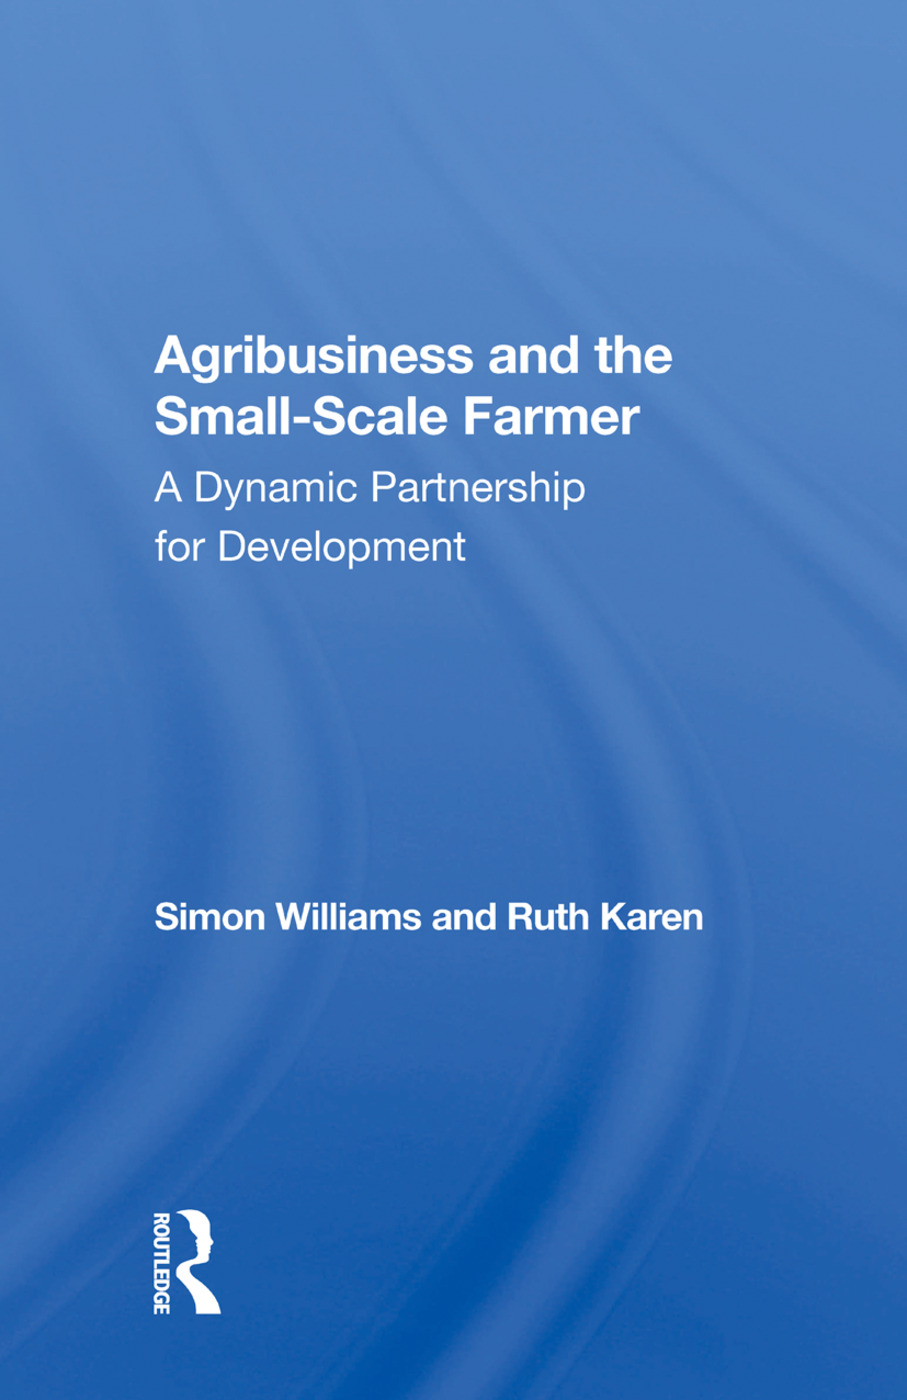 Agribusiness And The Small-scale Farmer: A Dynamic Partnership For Development book cover